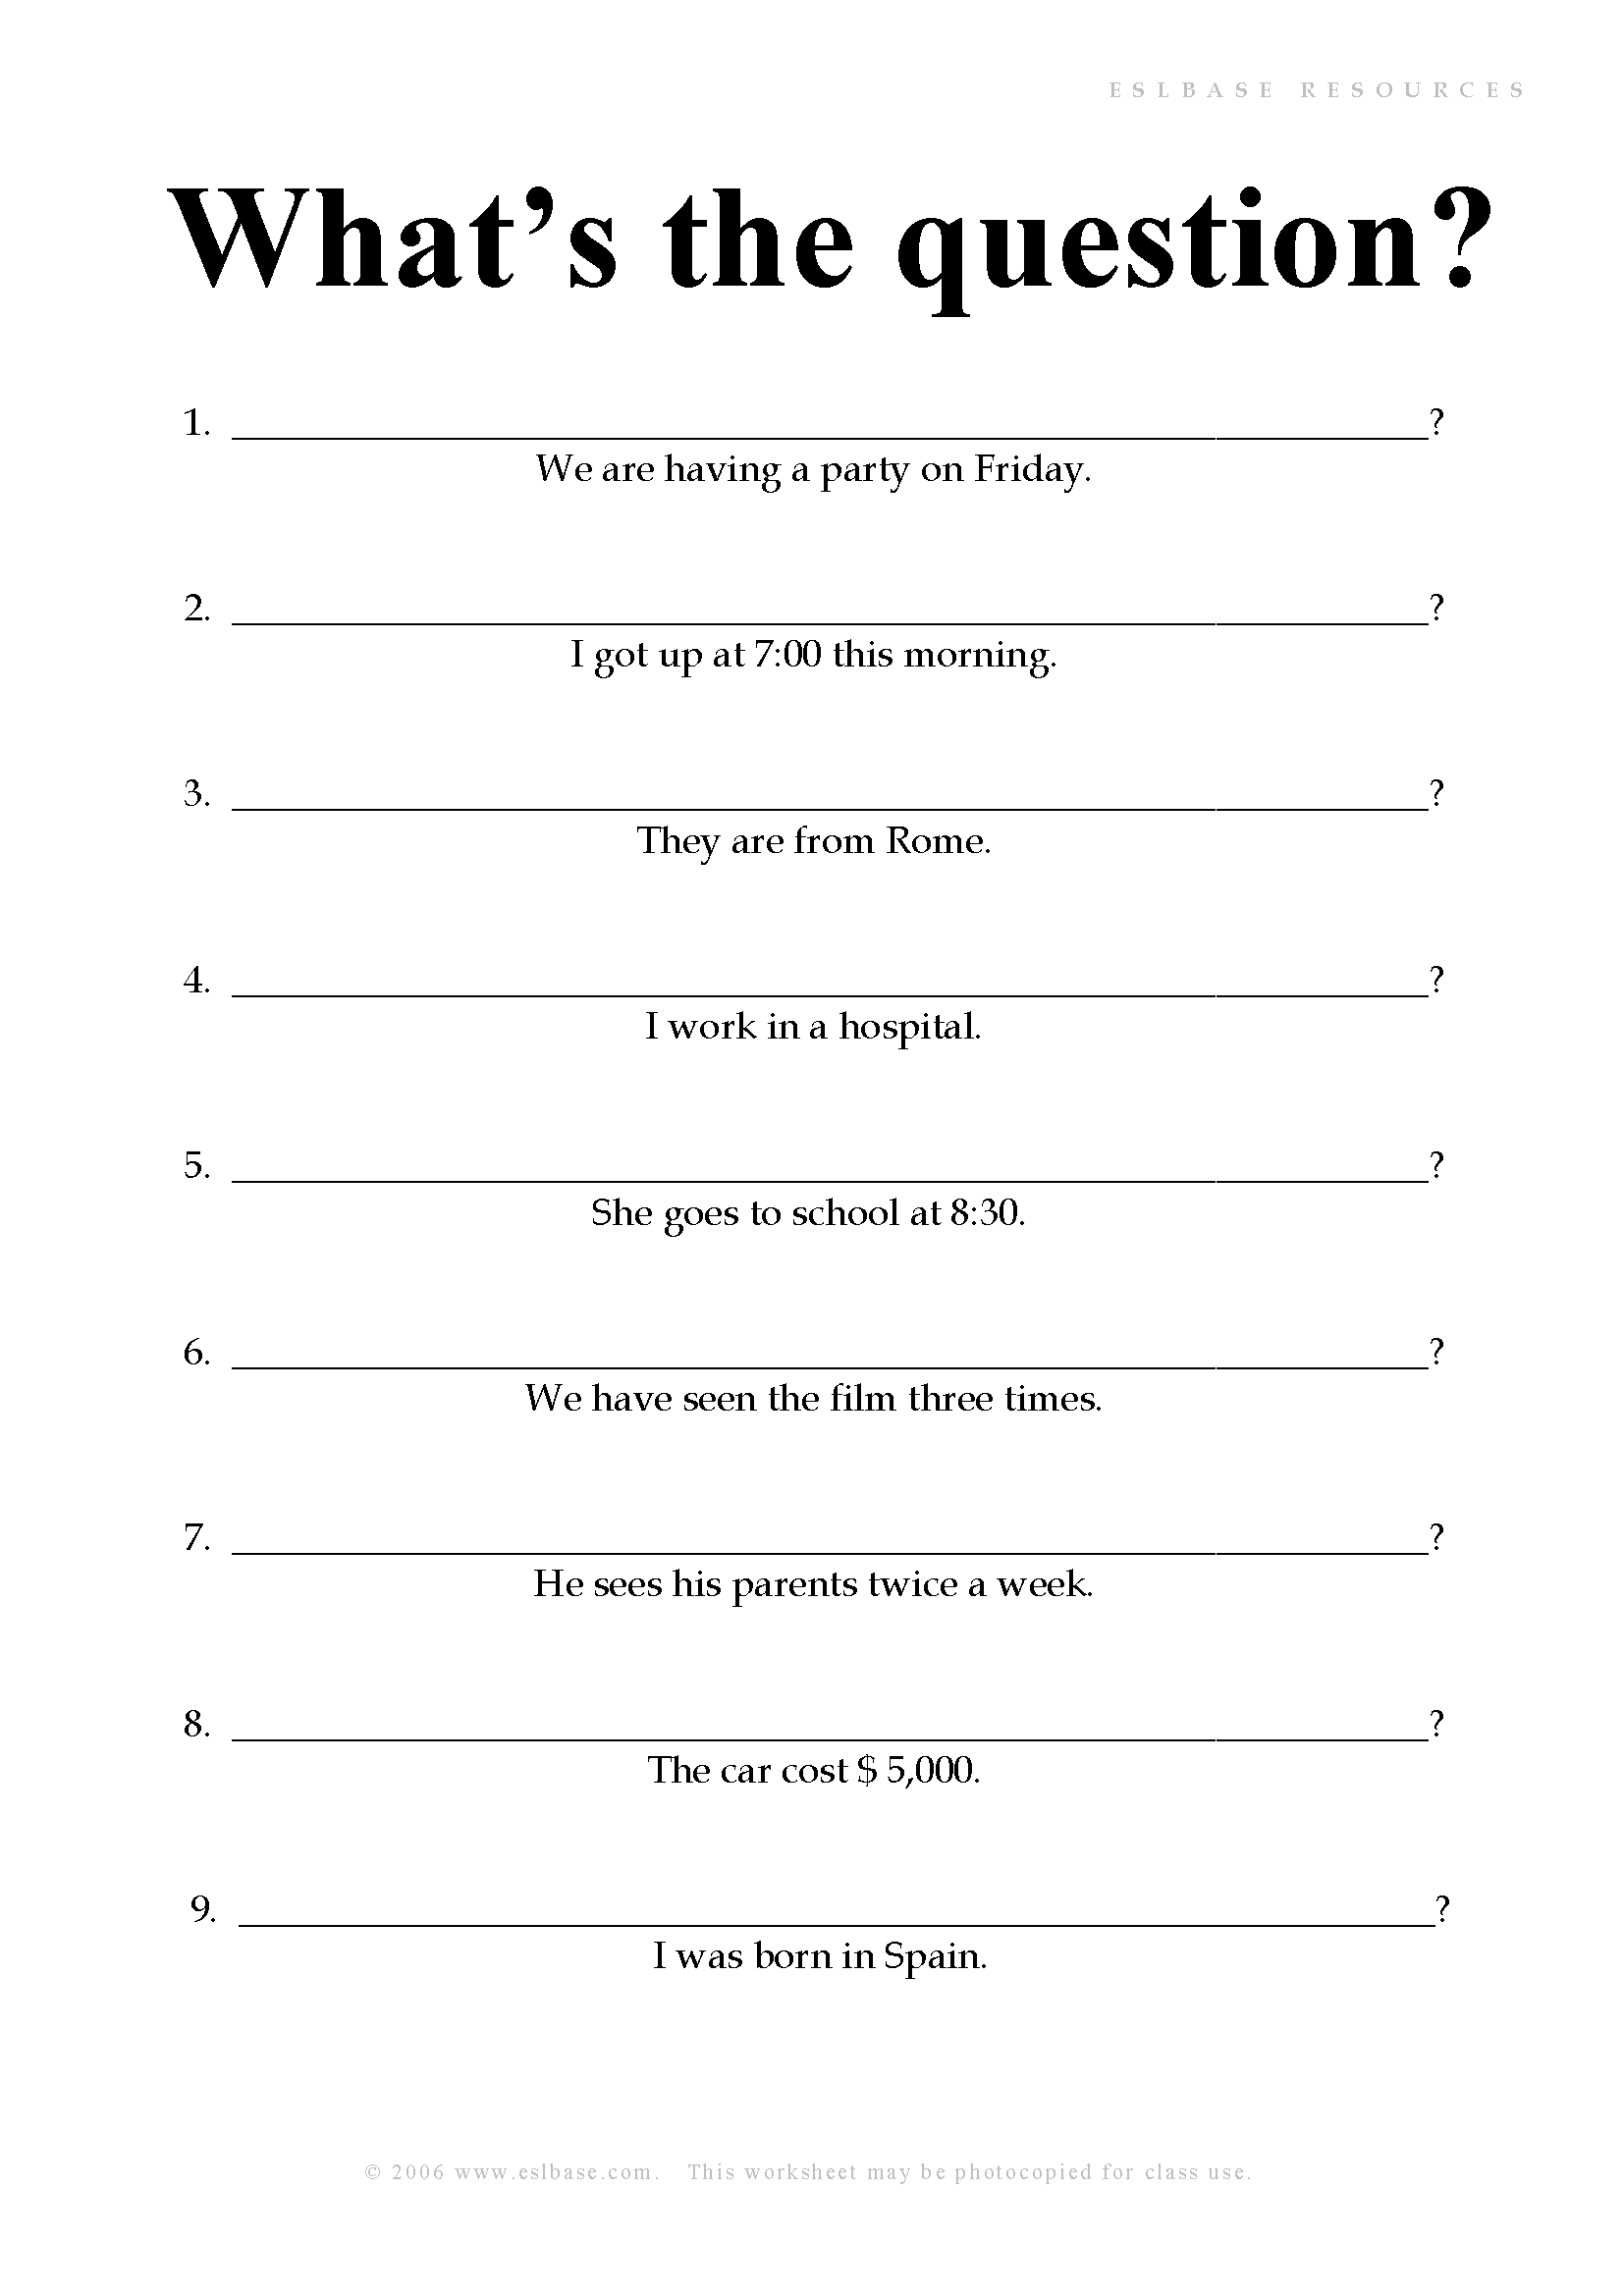 Worksheets Esl Practice Worksheets esl worksheets whats the question eslbase com worksheet to practise forming questions